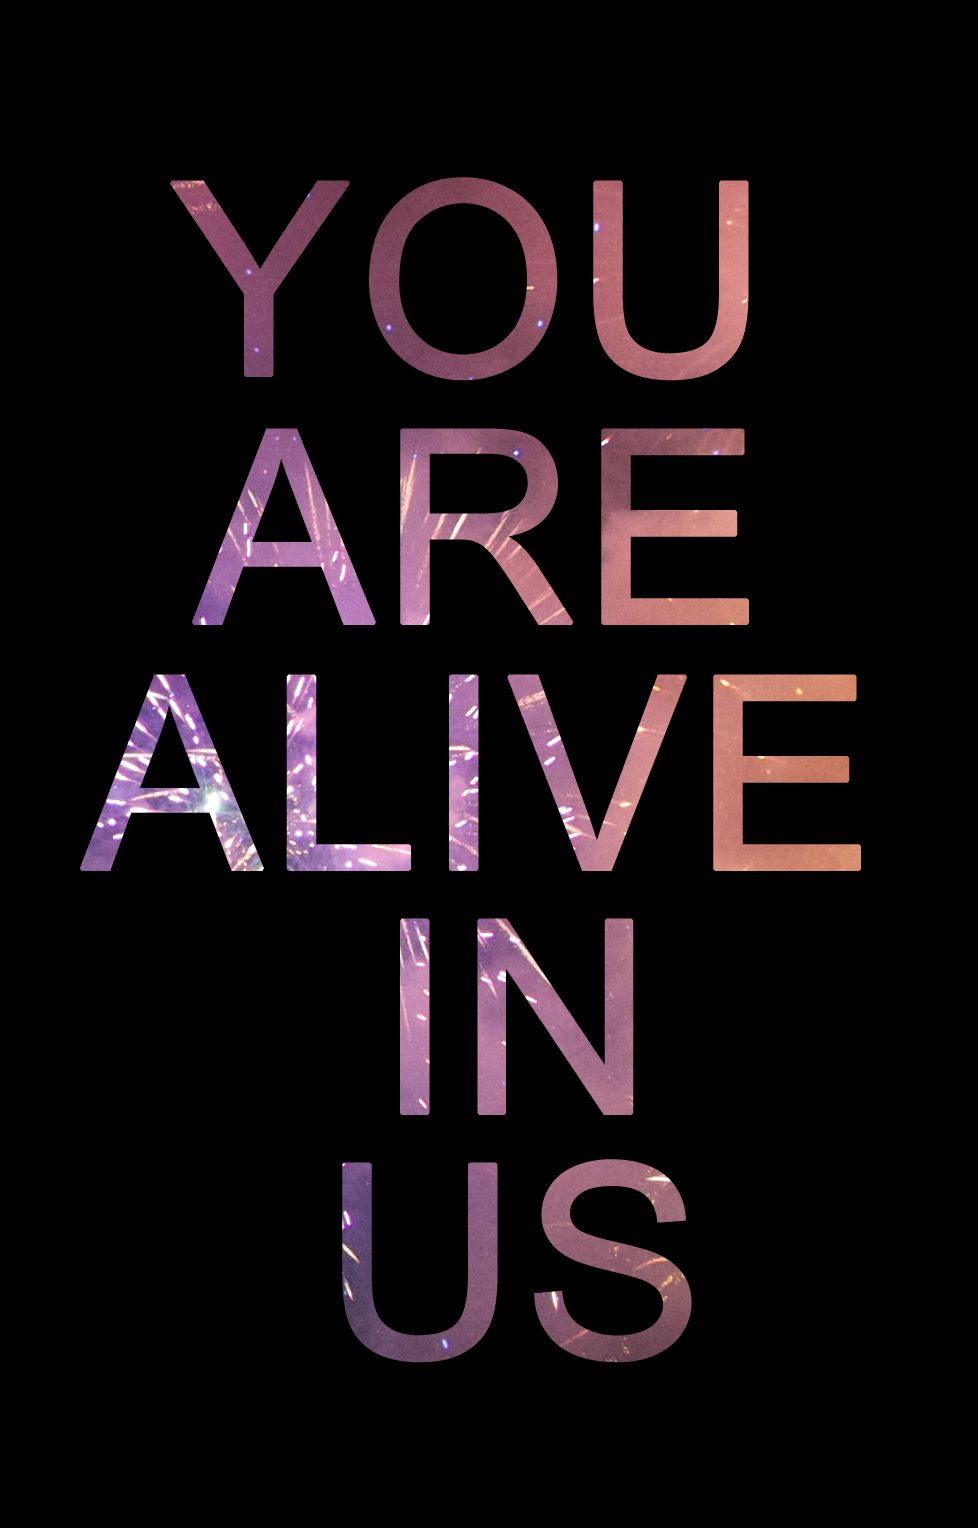 You Are Alive In Us Created By Thomas Duffy Random Shoutout To Itz Gibbo Https M Youtube Com Results Hillsong Quotes Christian Lyrics Worship Lyrics